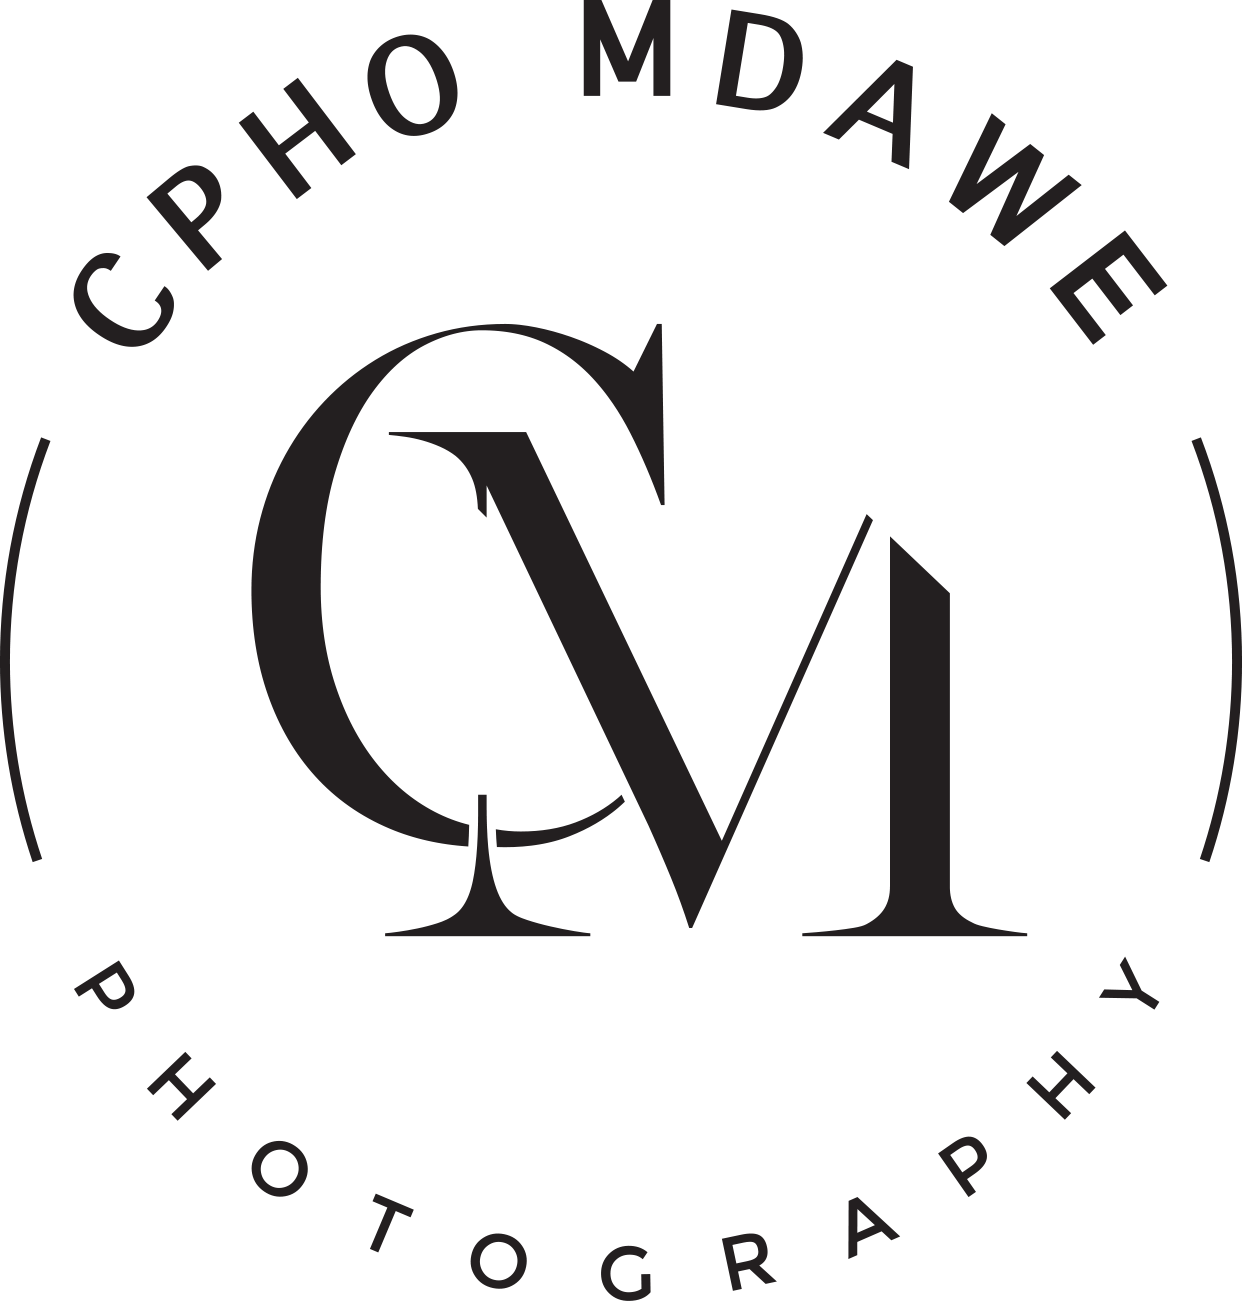 Cpho Mdawe - Wedding Photographer Johannesburg, South Africa